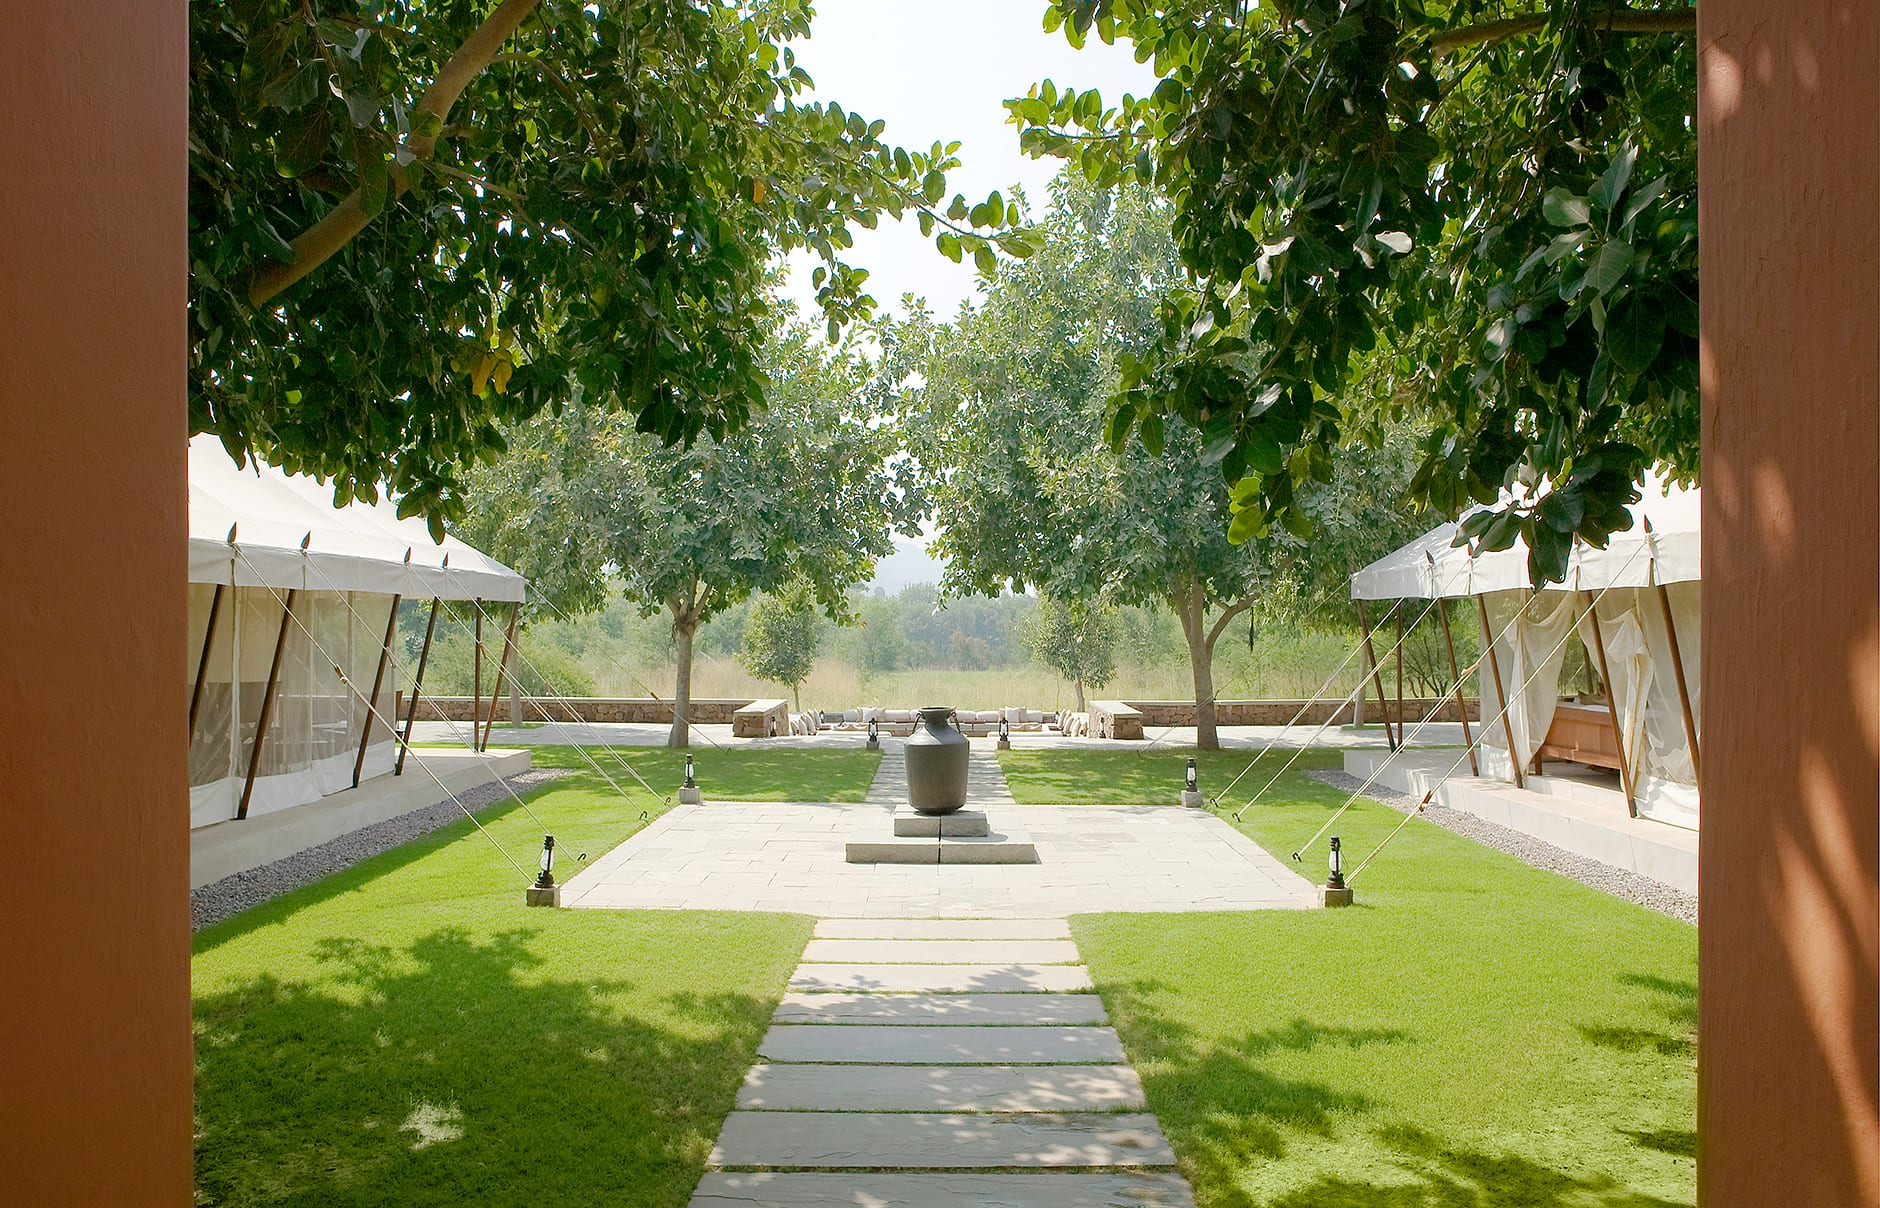 Entrance Pathway. Aman-i-Khas, Ranthambhore, India. © Amanresorts